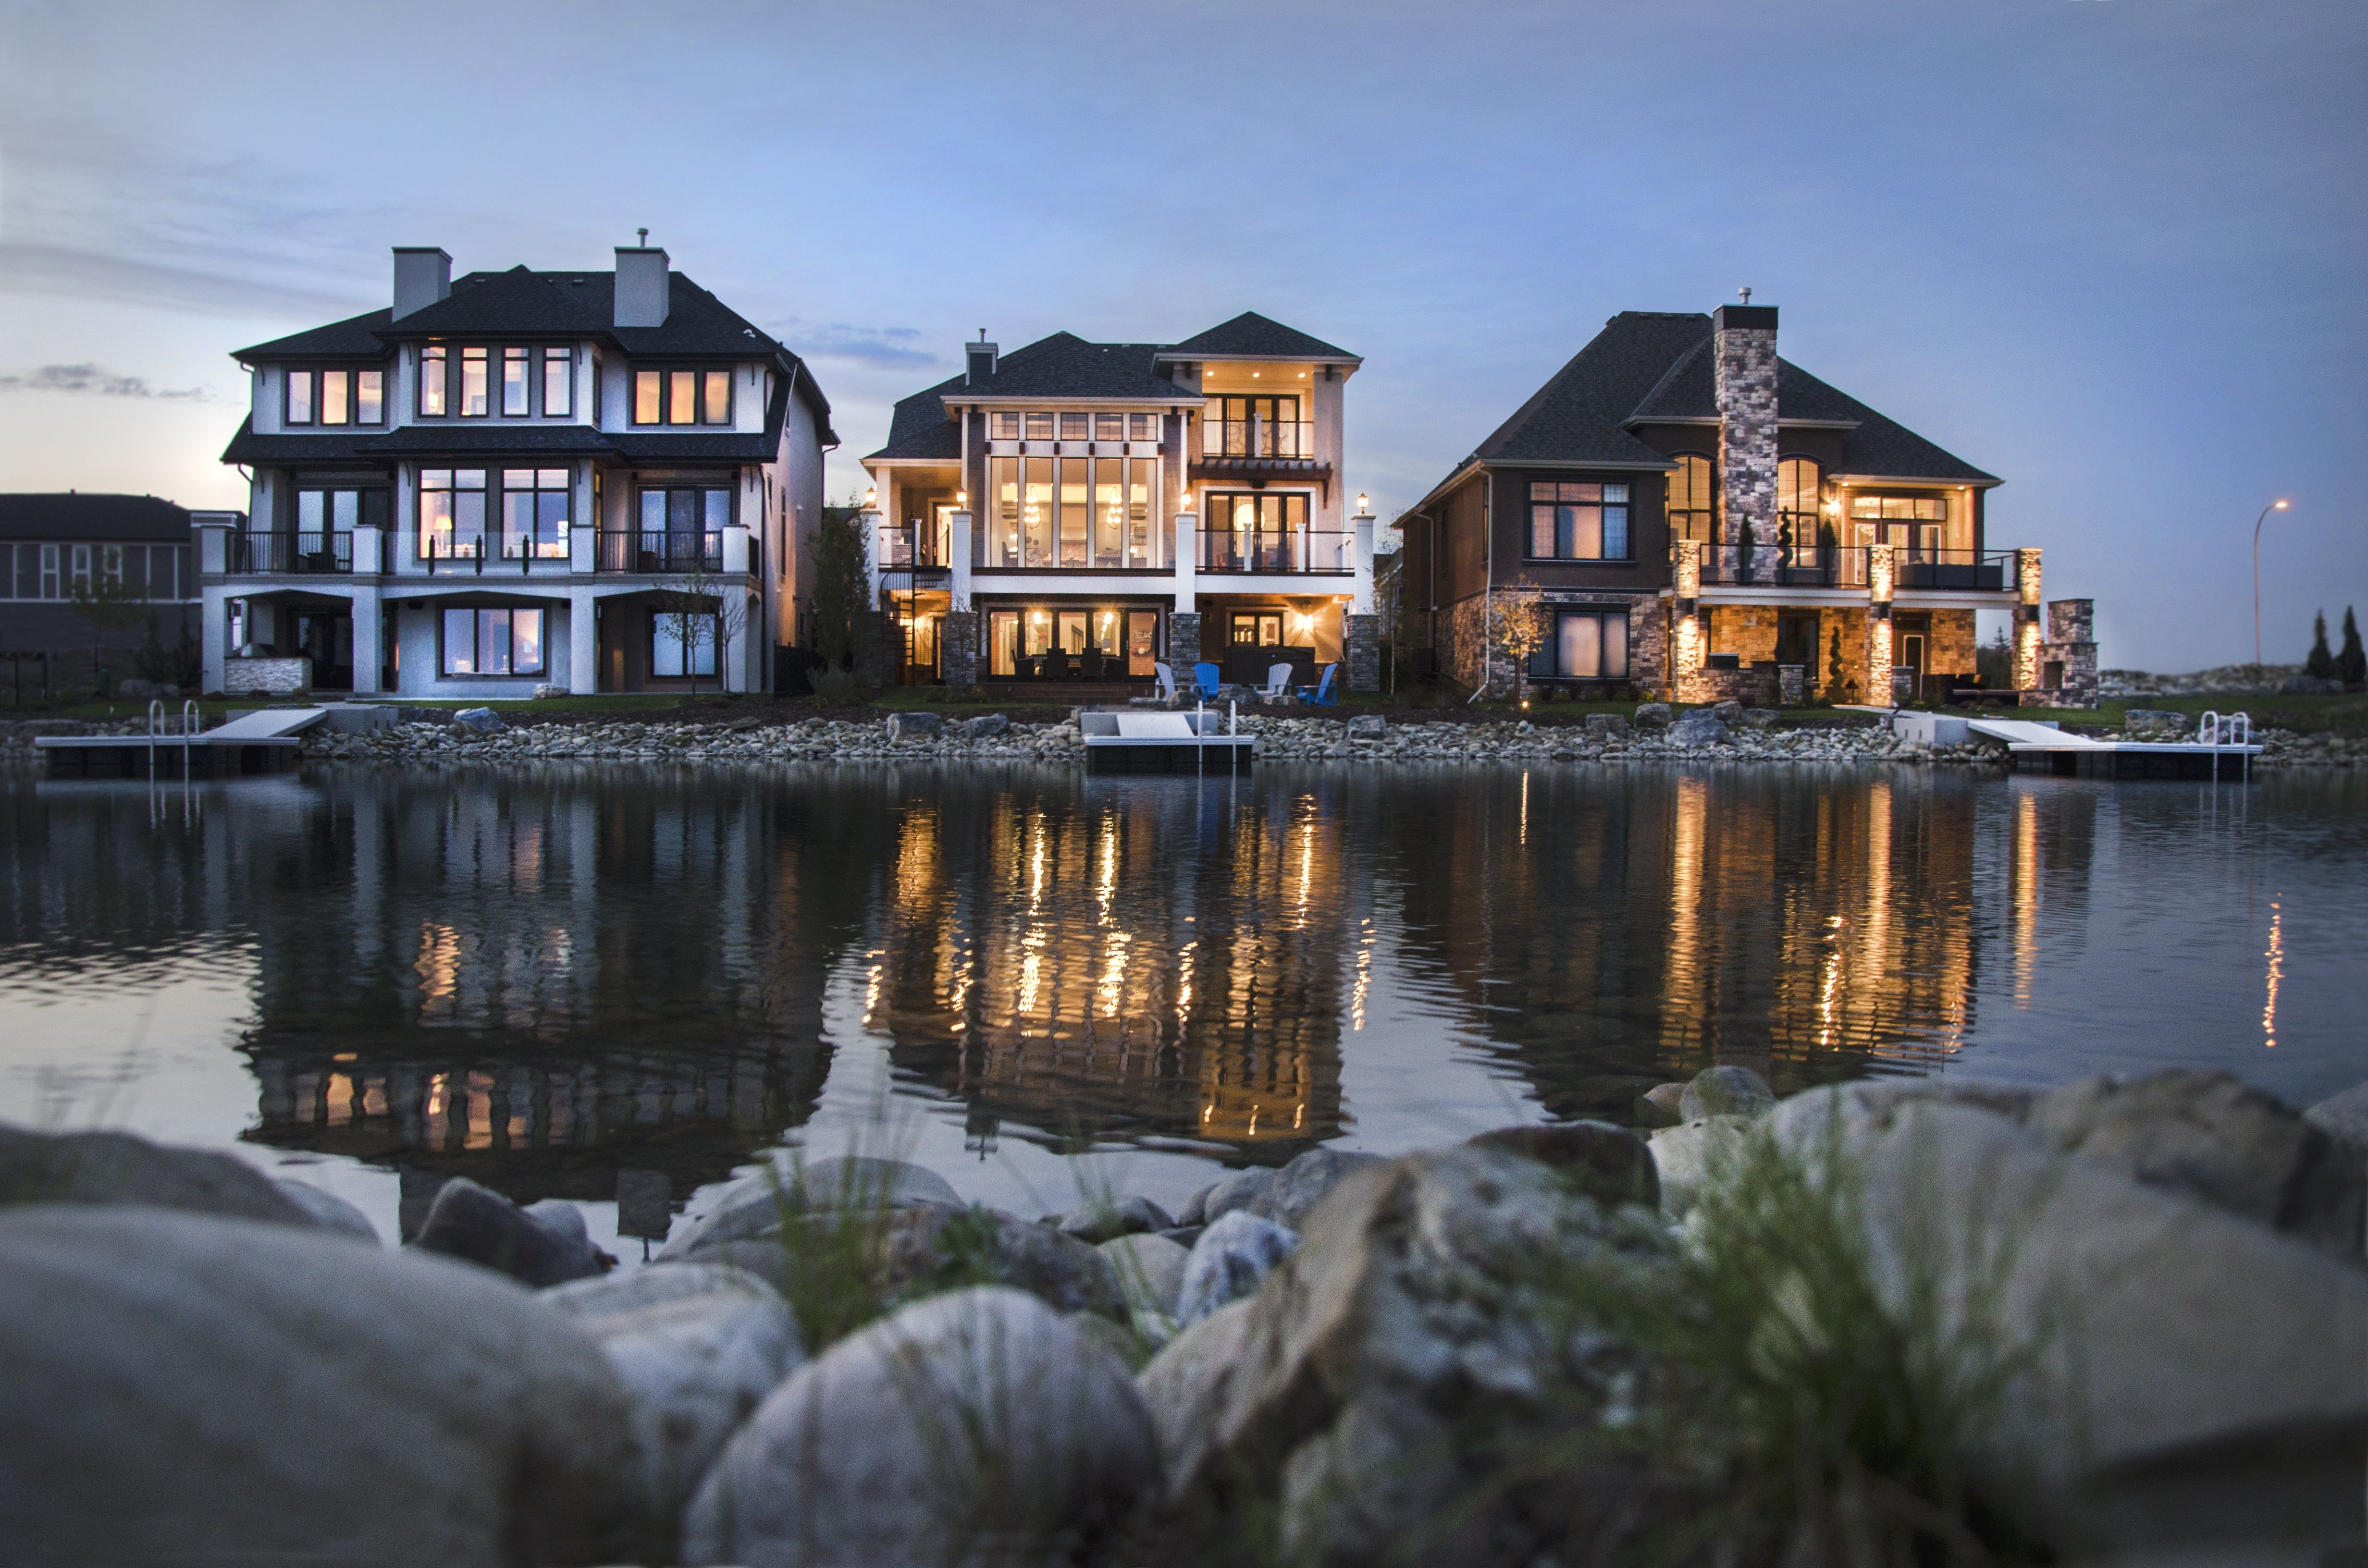 Lakefront estate show homes by Calbridge, Morrison and Baywest. #HopewellResidential #estate #showhomes #Mahogany